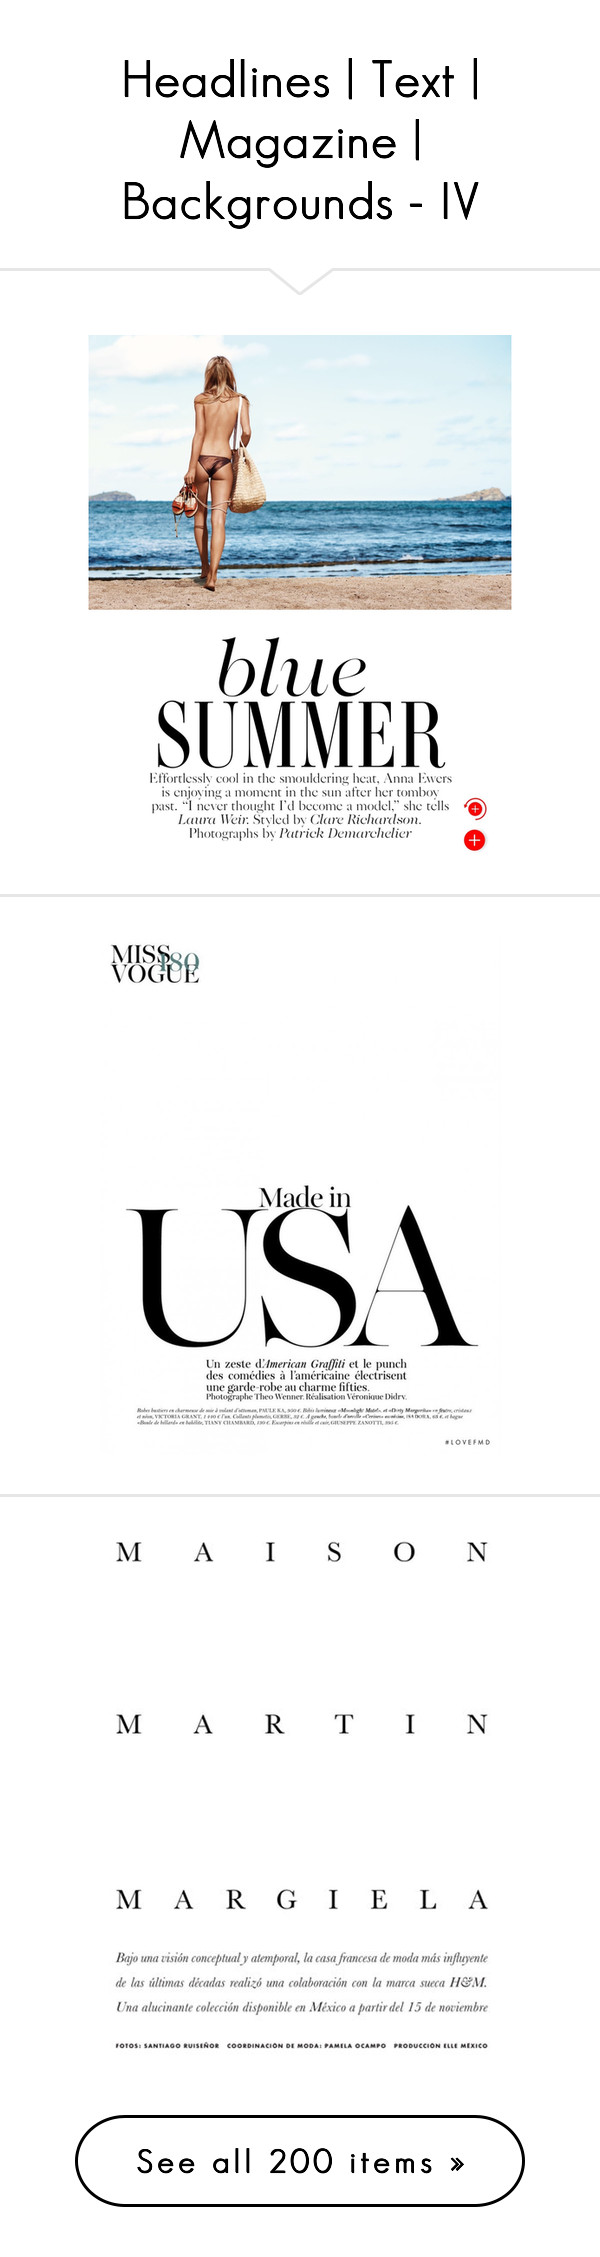 """Headlines 